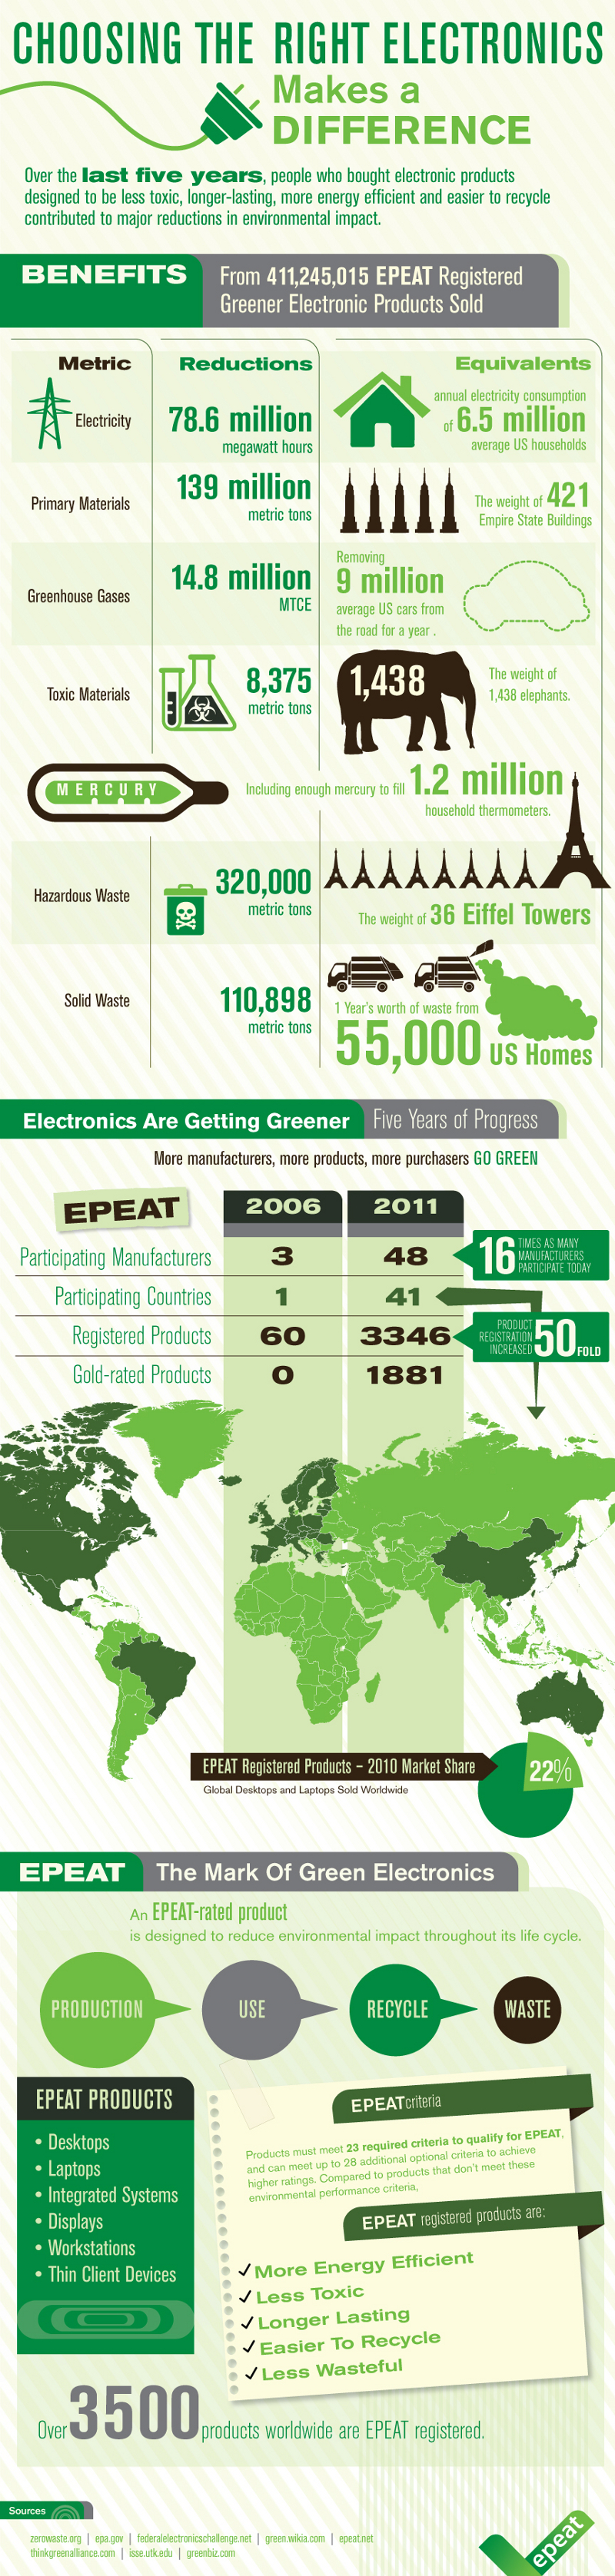 Guide to Green Electronics